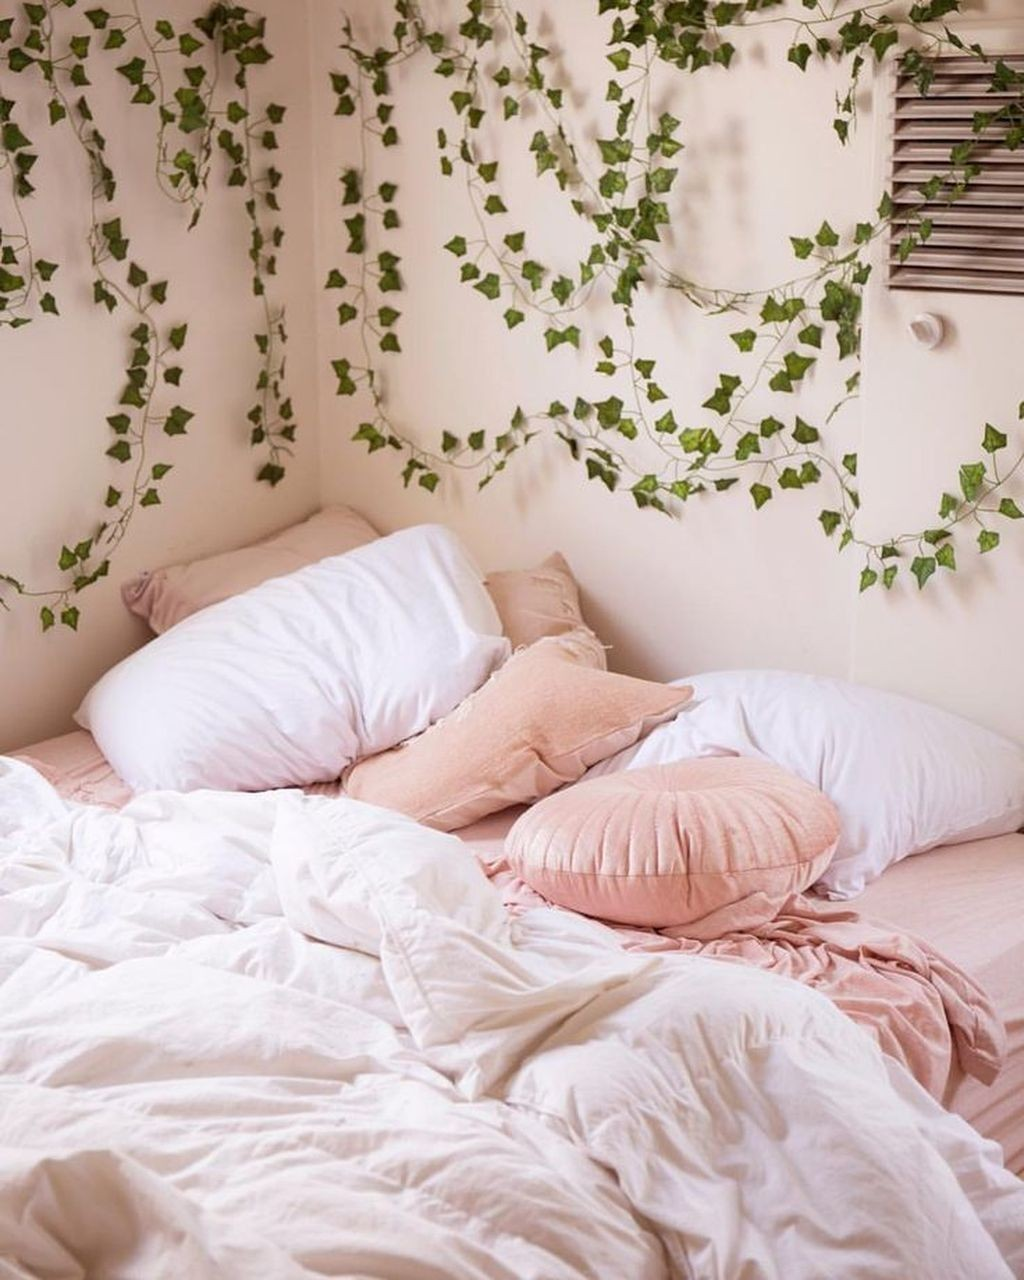 Bedroom Pink Aesthetic Bedsheets Uploaded By Down The Rabbit Hole